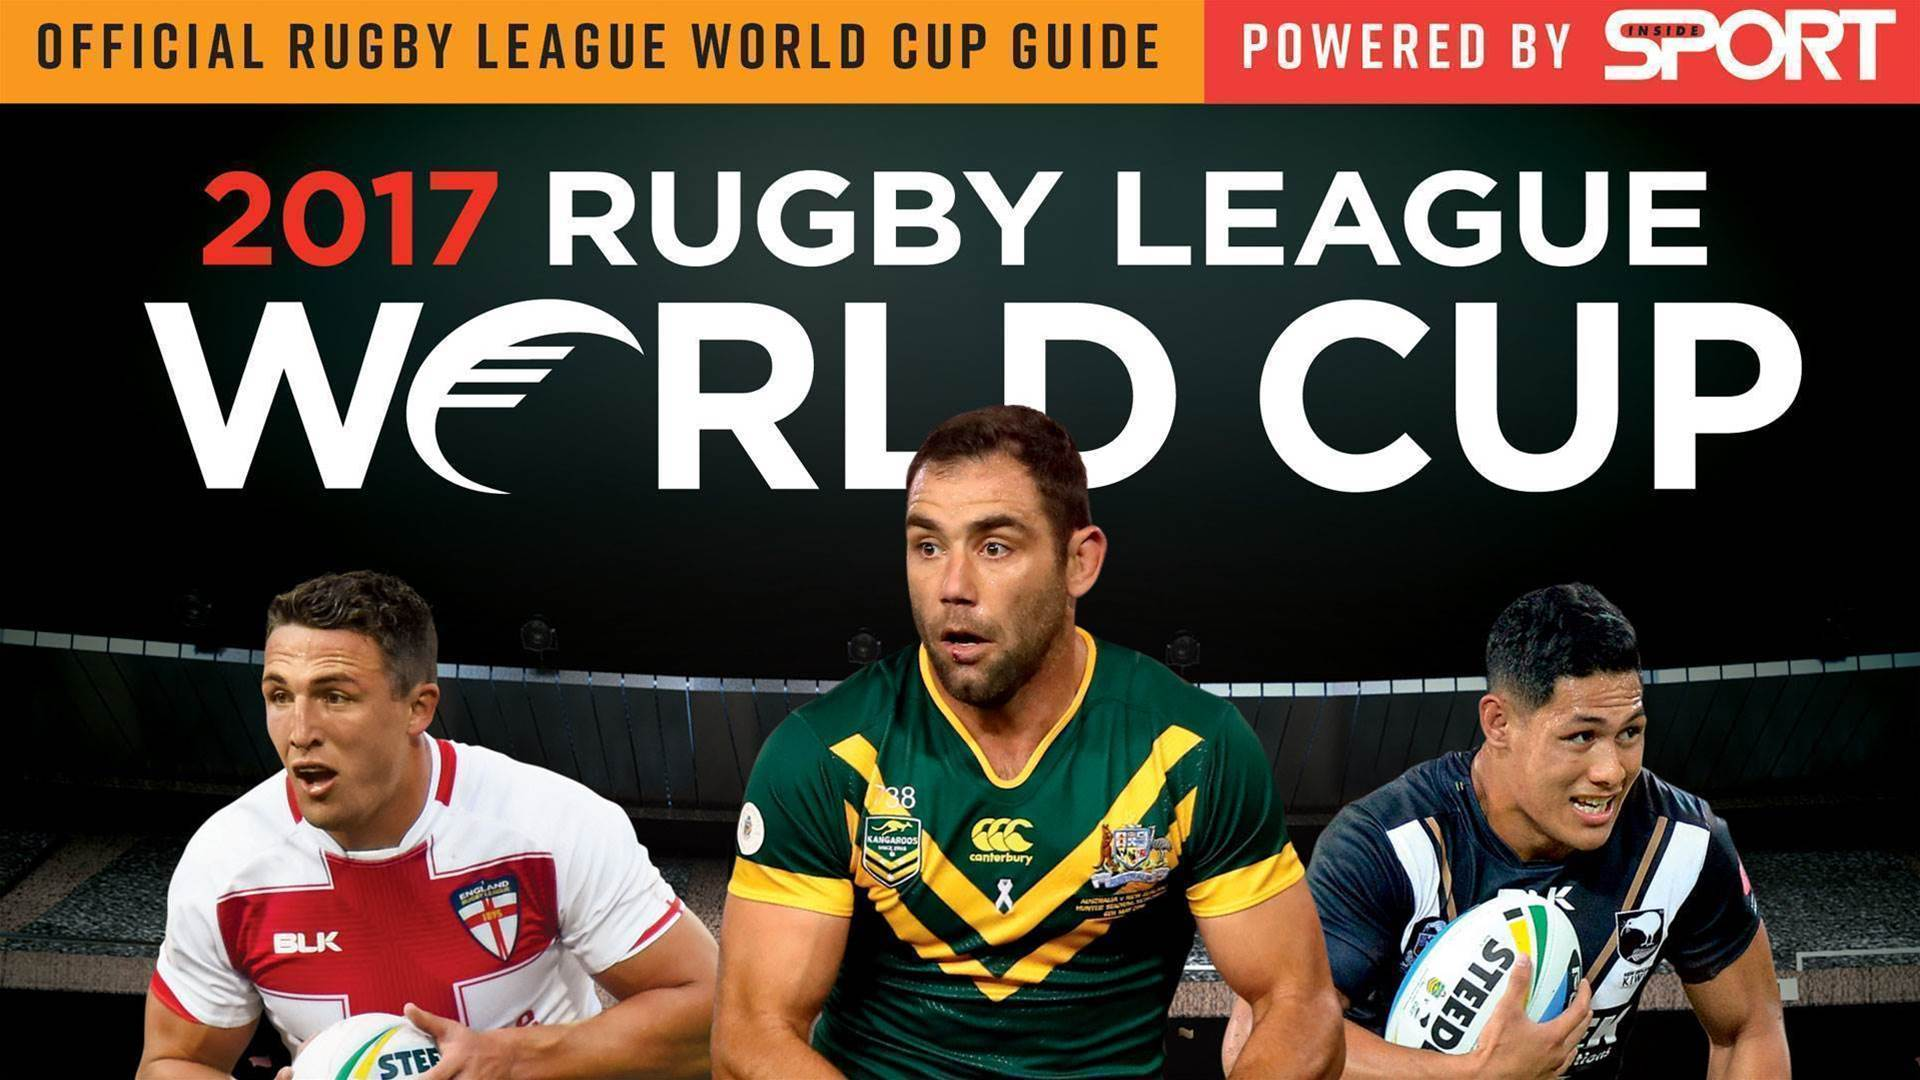 Pre-order your 2017 Rugby League World Cup Guide